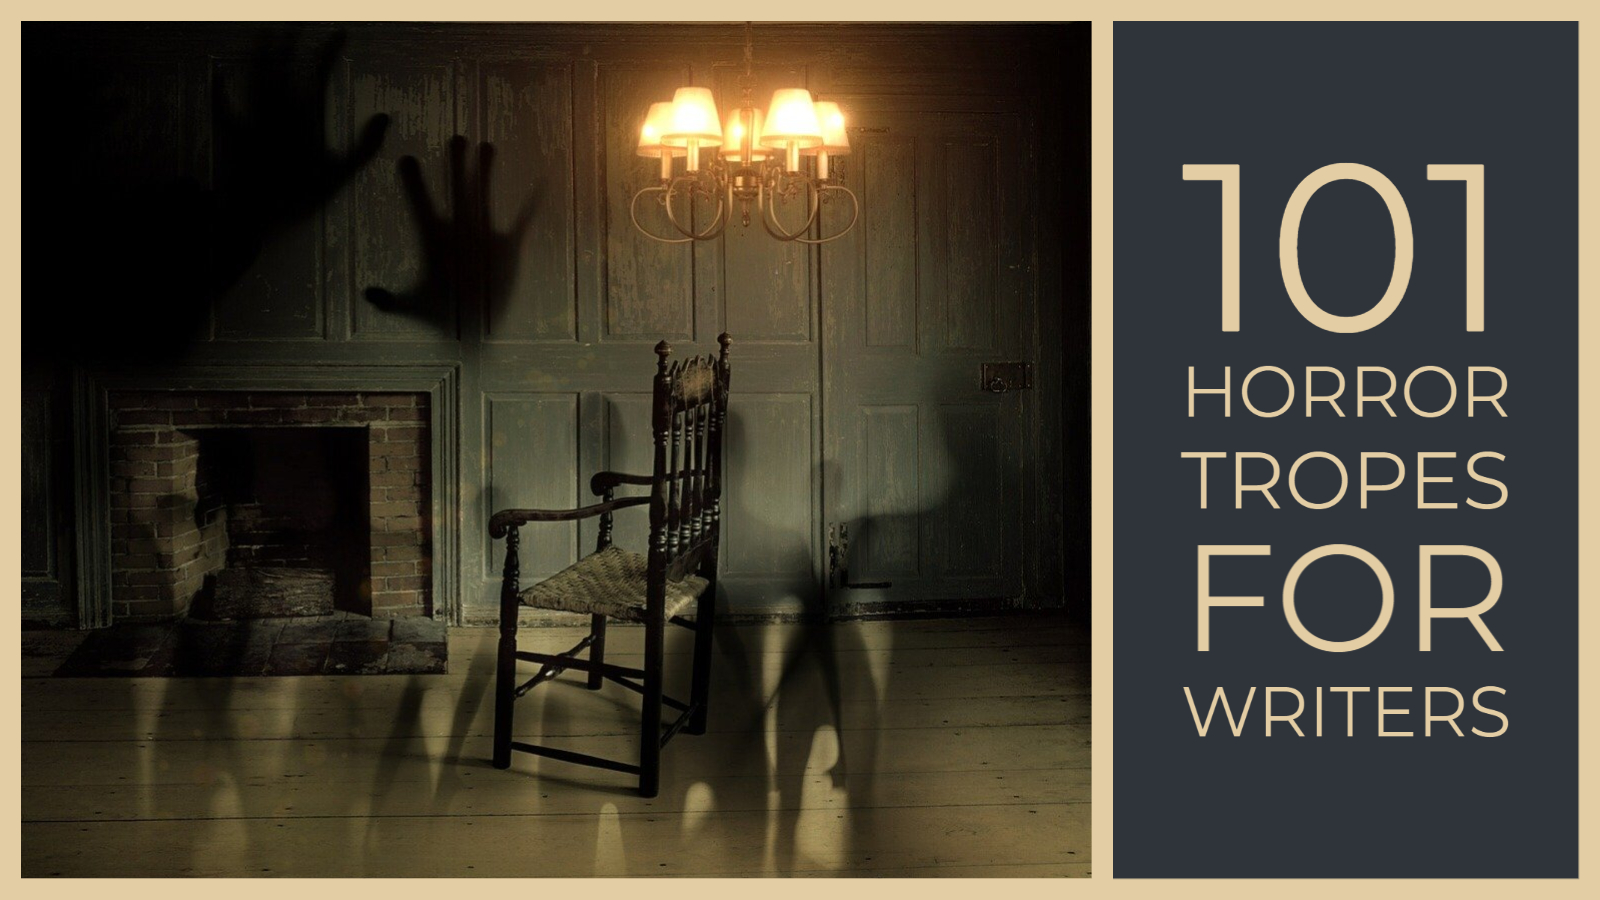 101 Horror Tropes for Writers